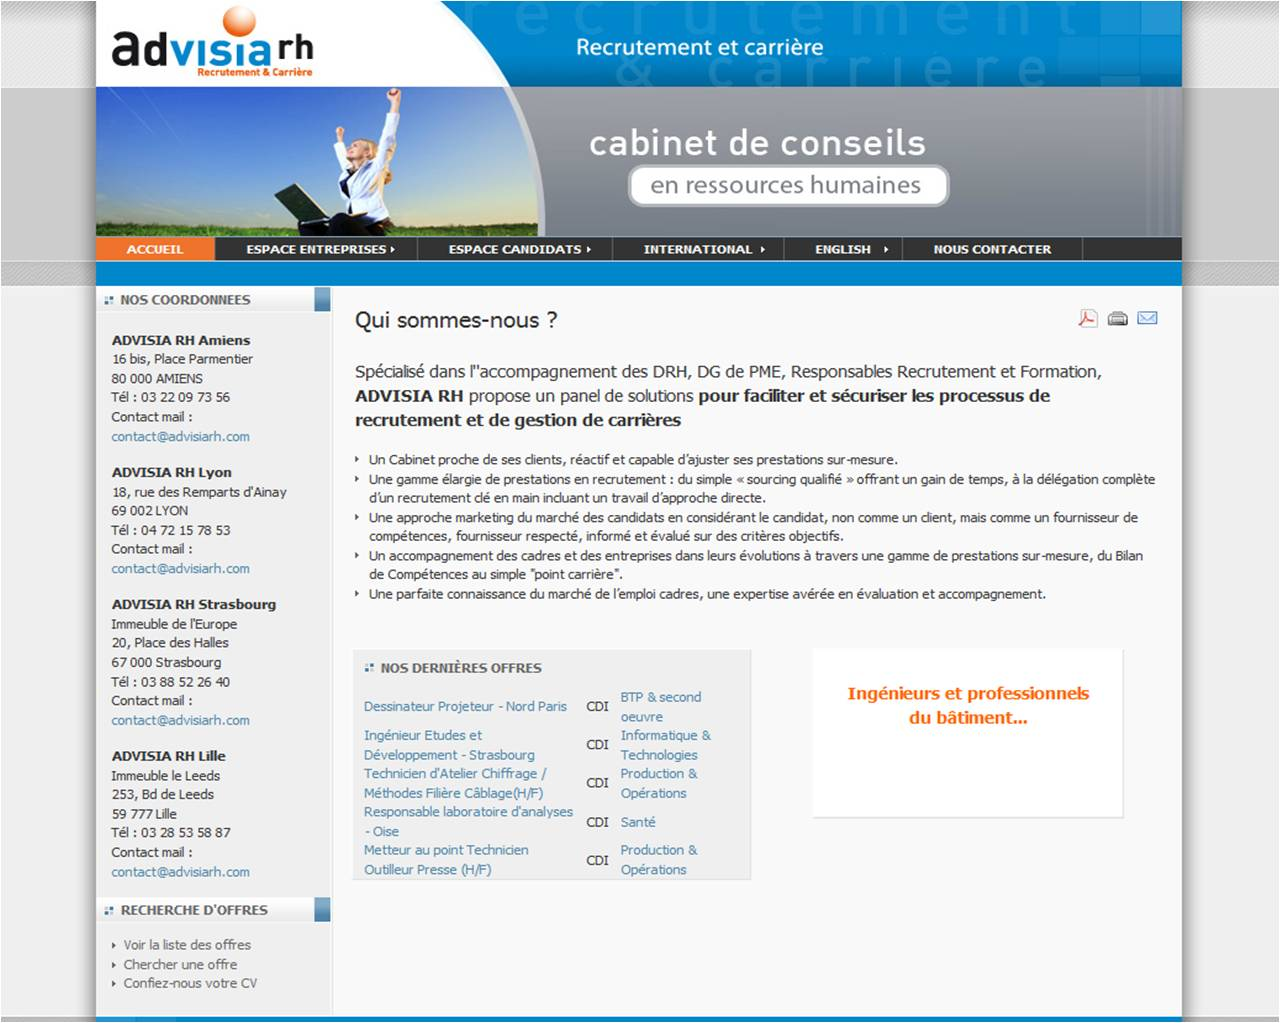 cheap cabinet recrutement strasbourg with cabinet recrutement strasbourg